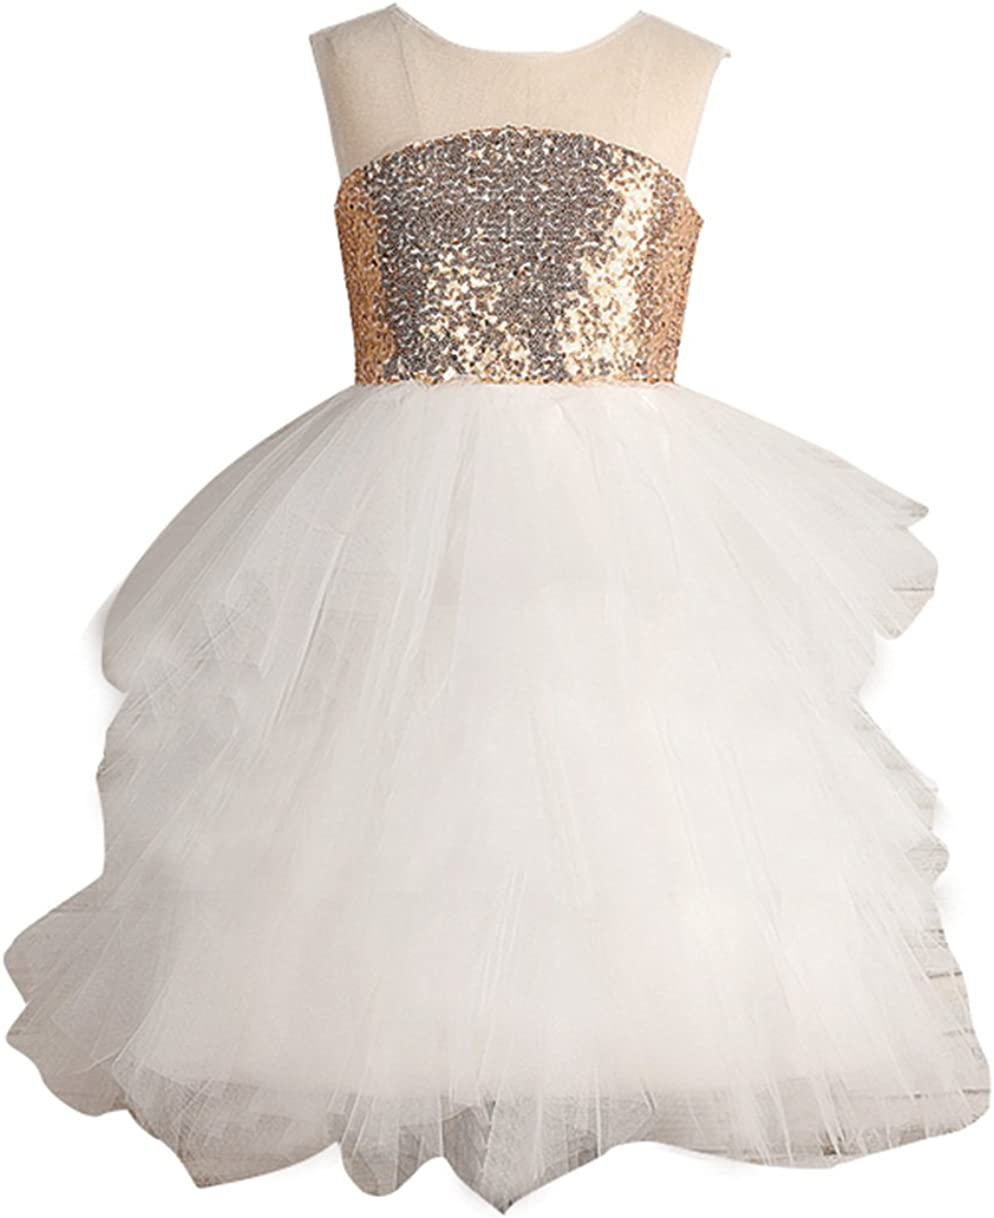 Luxury goods flowerry Champagne Max 77% OFF Sequin Ivory Tutu Pa Dress Birthday Girl